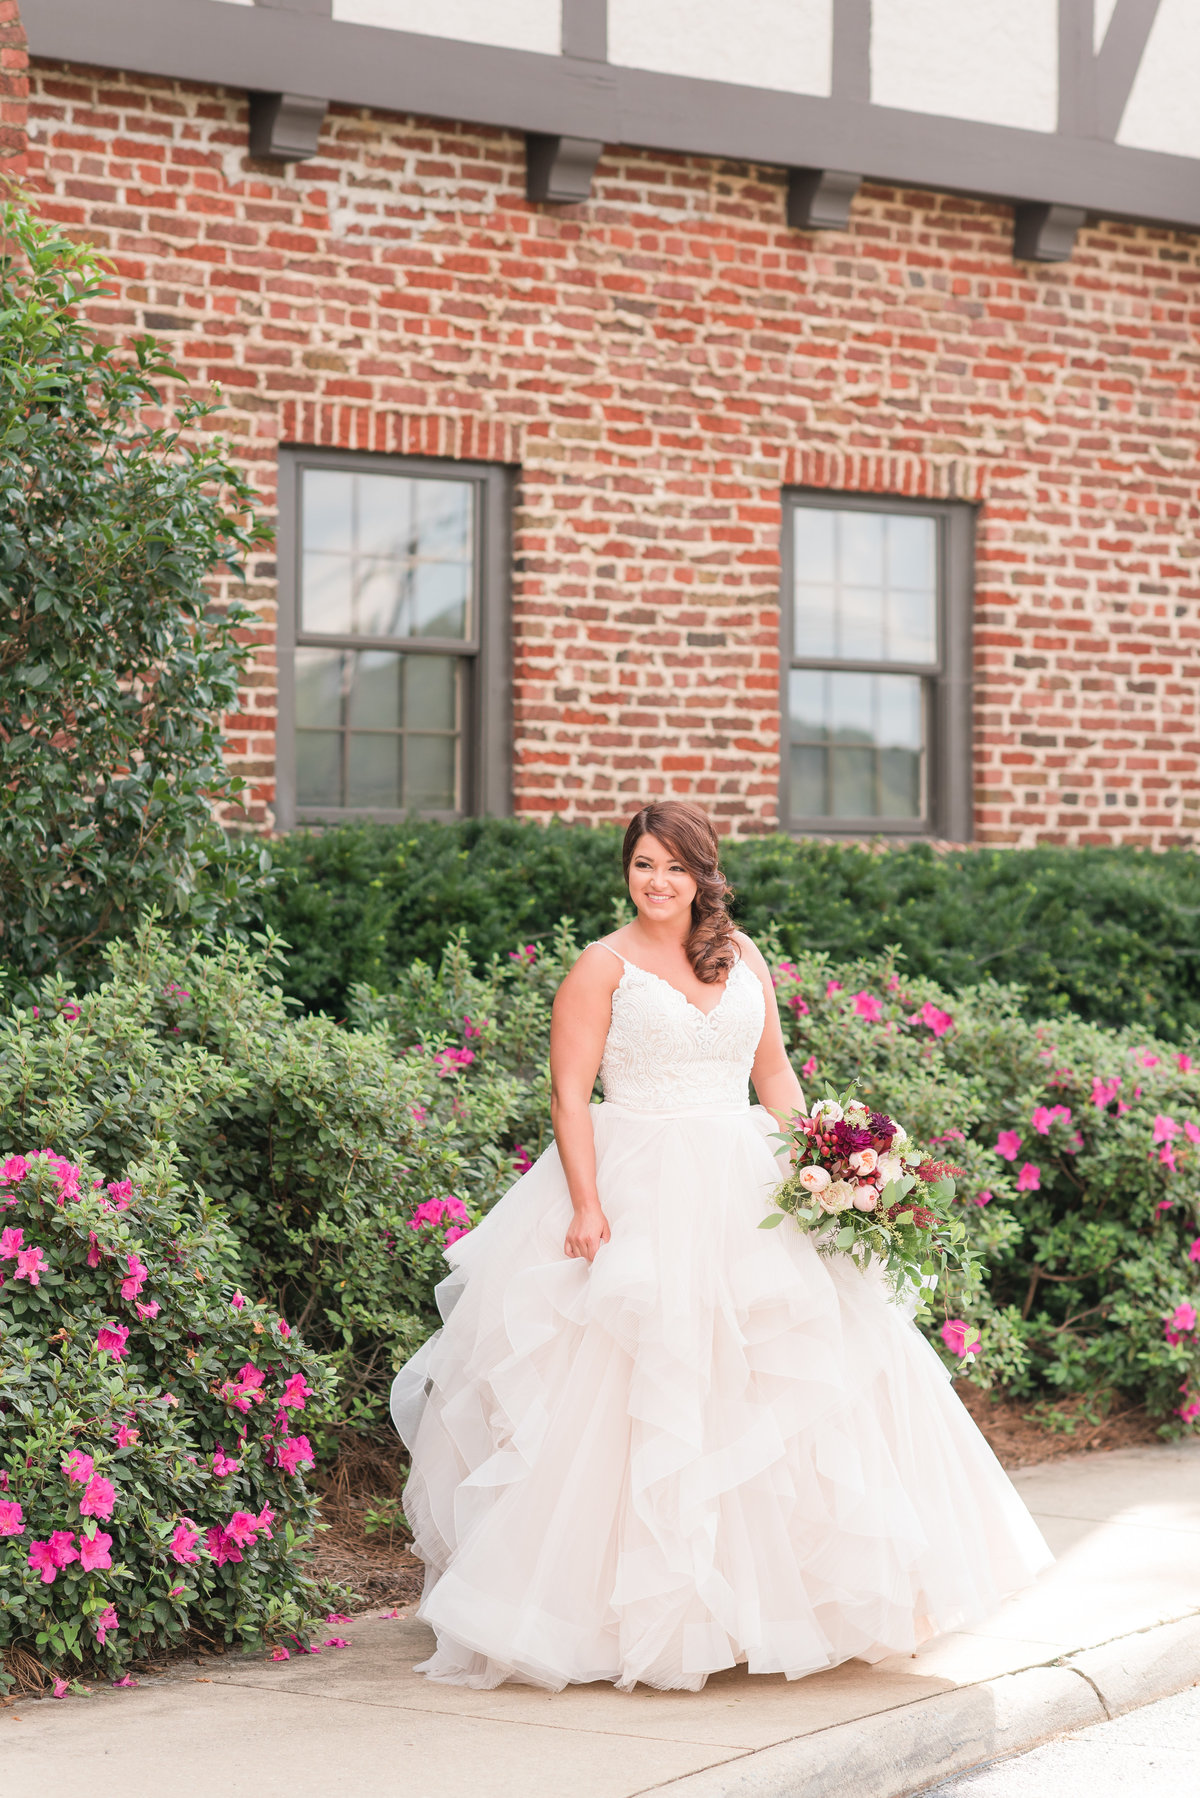 bride wearing a champagne wedding dress standing in front of a brick building holding a pink and red roses wedding bouquet at Sedgefield Country Club, Greensboro NC